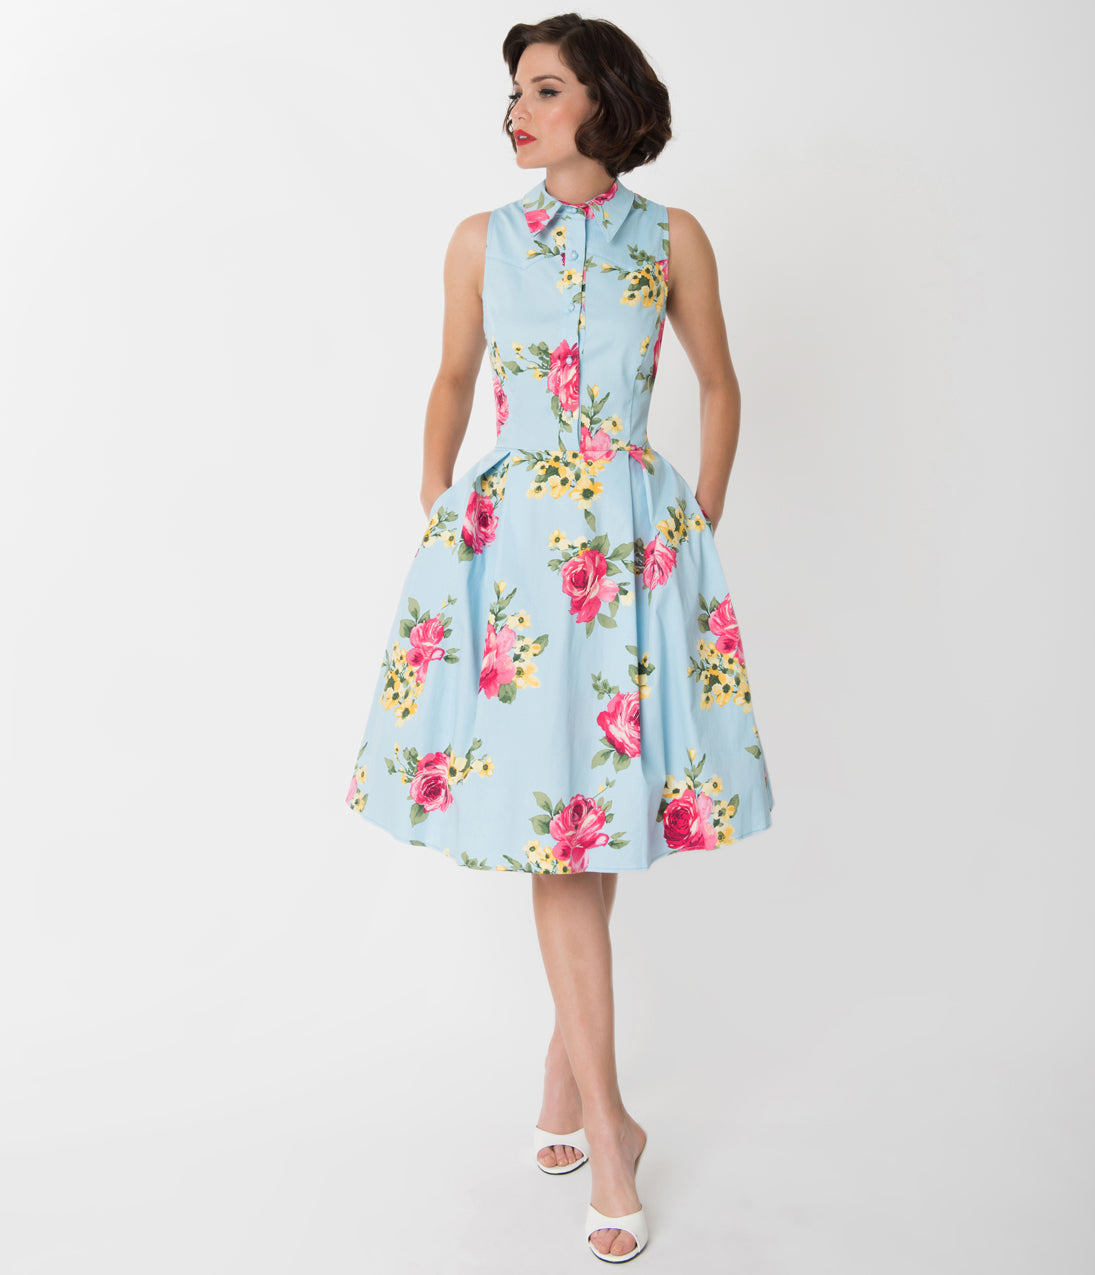 Vintage 50s Dresses: 8 Classic Retro Styles Light Blue  Blooming Floral Print Button Up Swing Dress $68.00 AT vintagedancer.com